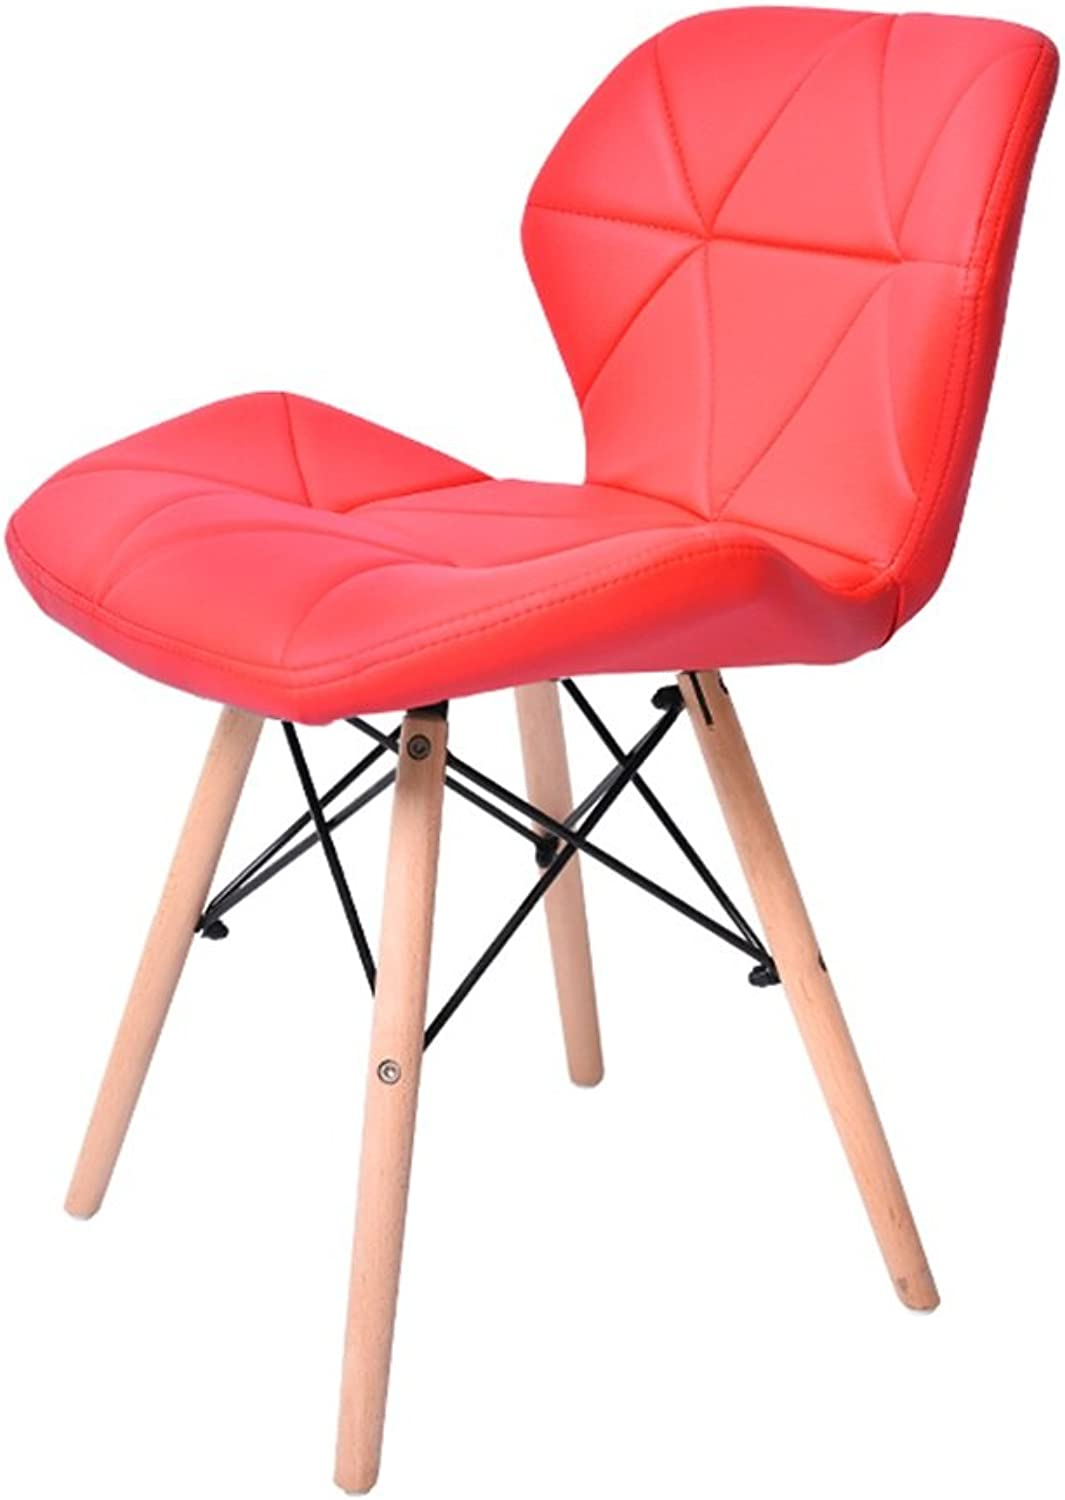 SJB PU Chair Soft Dining Chair Leisure Nordic Cafe Modern Simple Chair Office Chair Negotiating Chair (color   E)